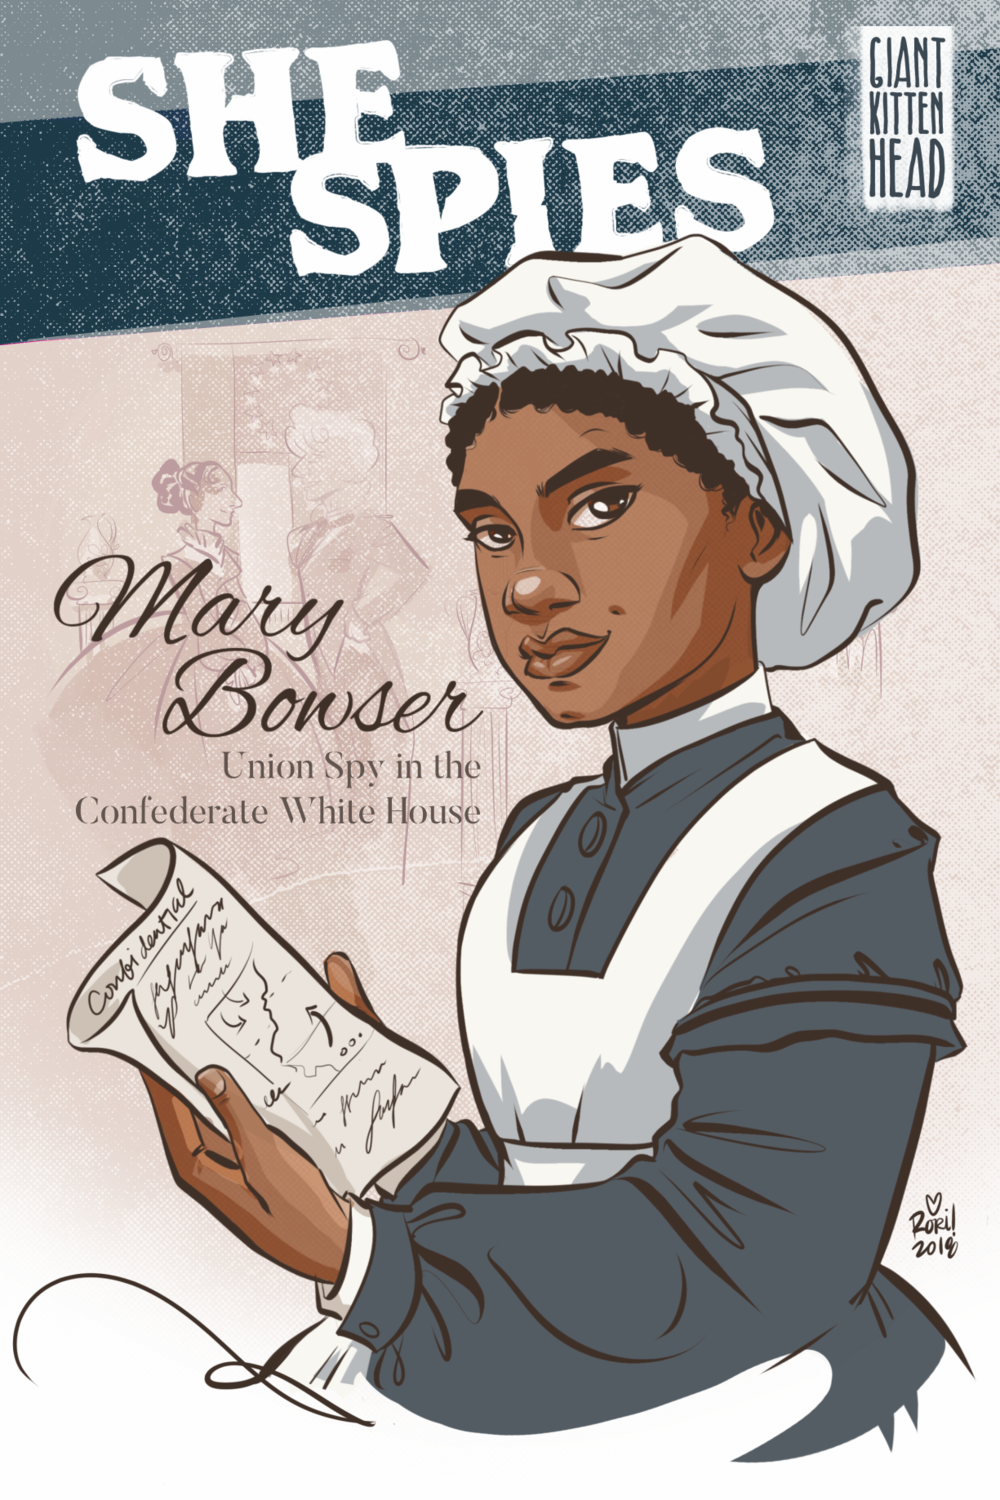 Cover_Mary Bowser2.png